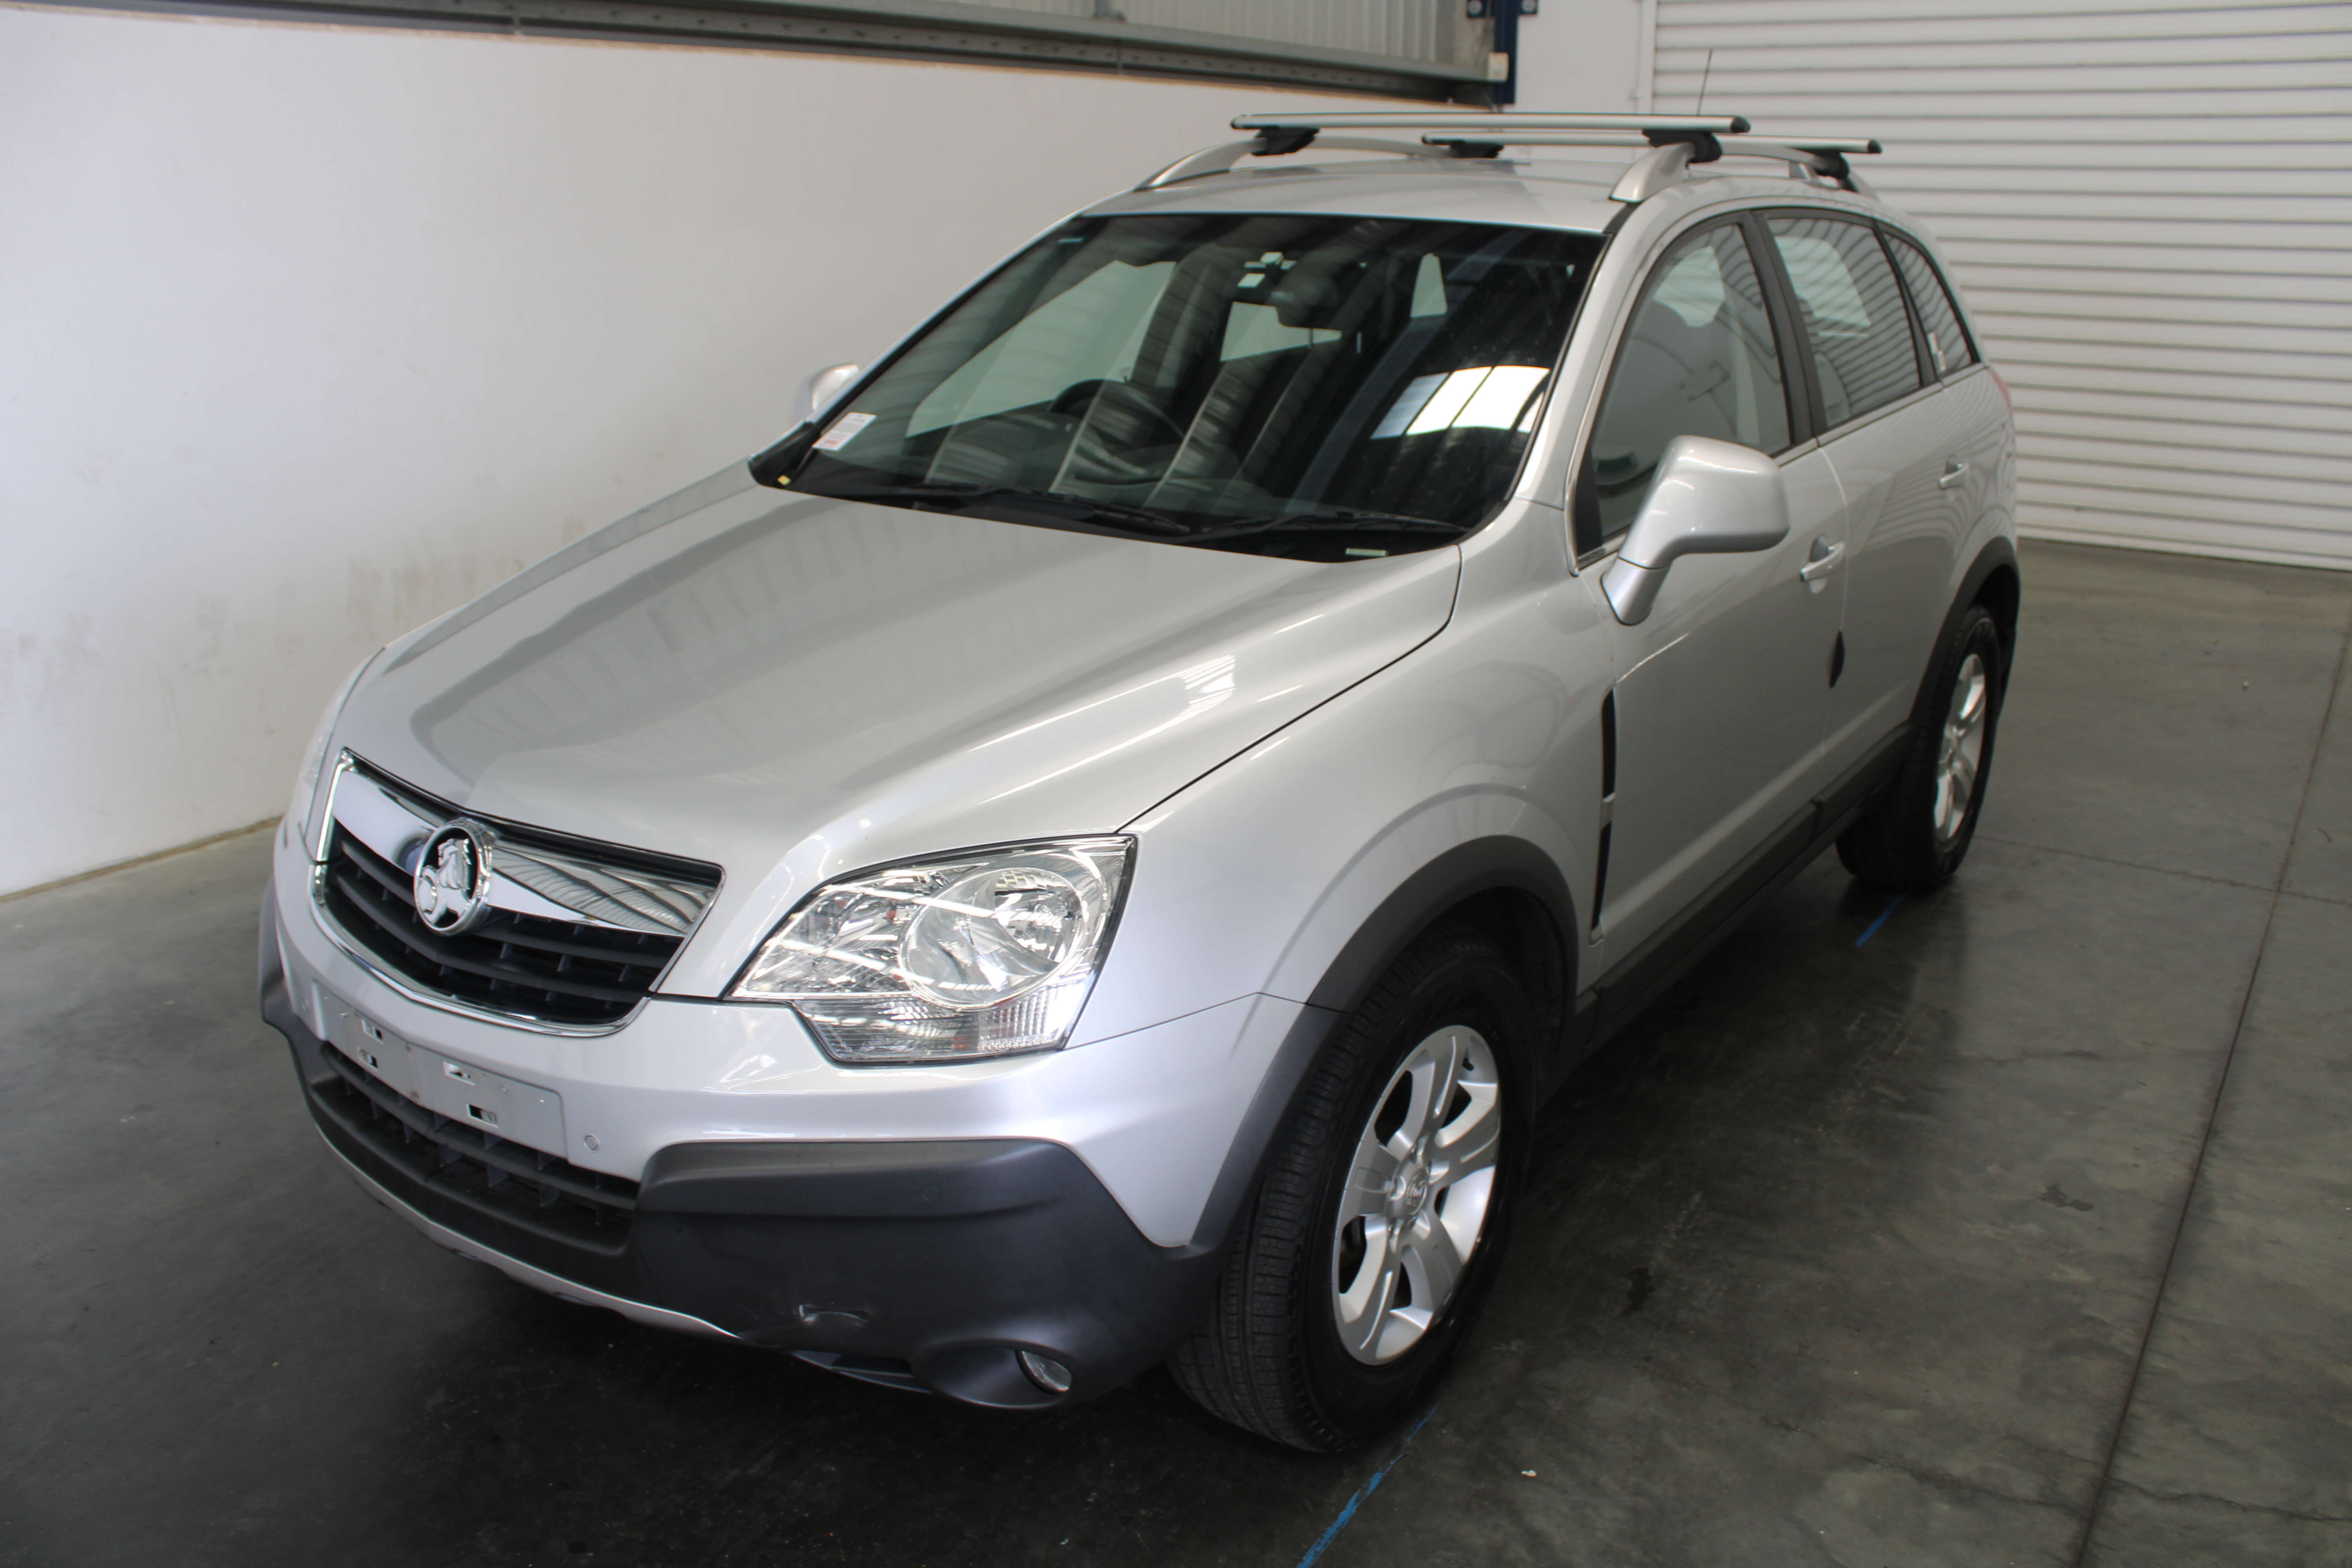 2010 Holden Captiva 5 (4x4) CG Automatic Wagon